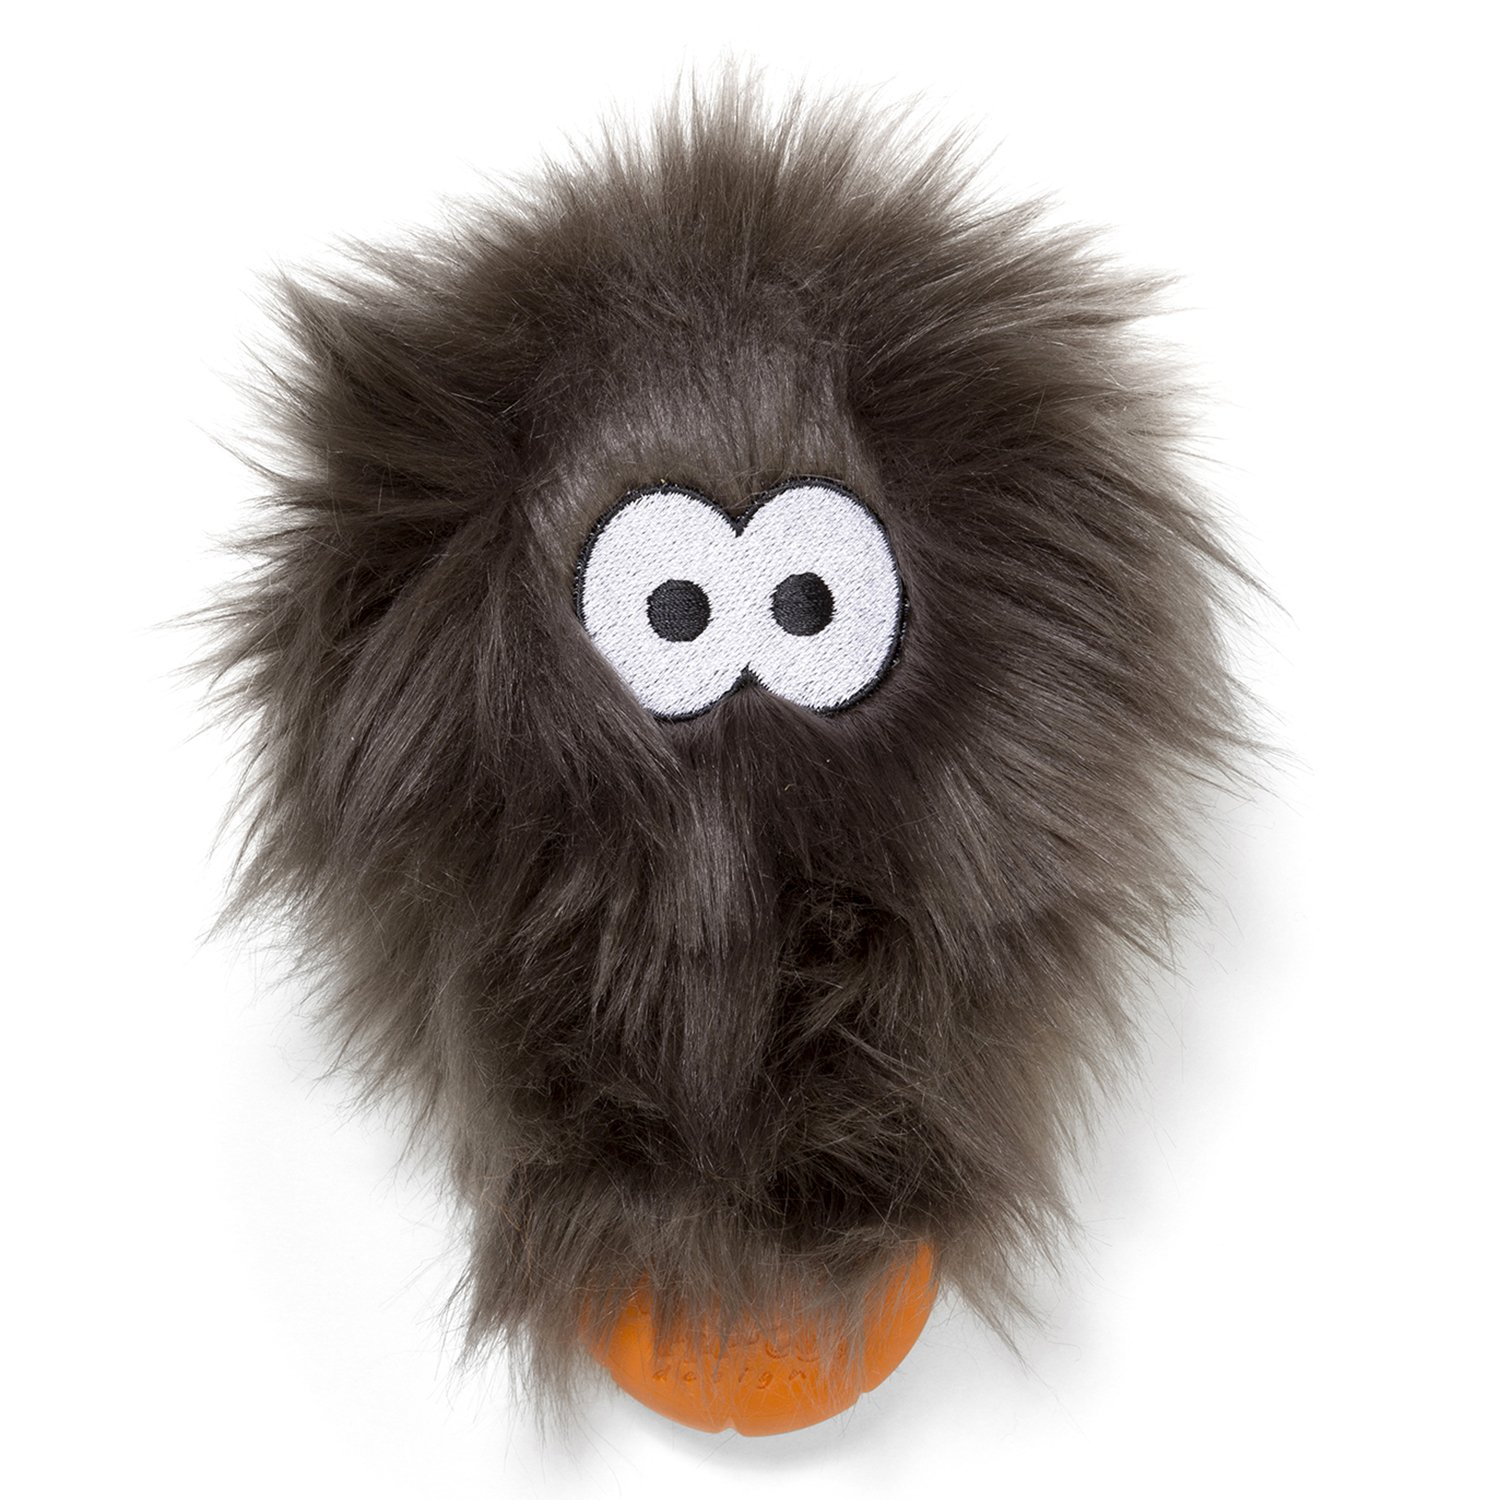 West Paw Rowdies with HardyTex and Zogoflex, Durable Plush Dog Toy for Small to Medium Dogs, Rosebud, Pewter Fur